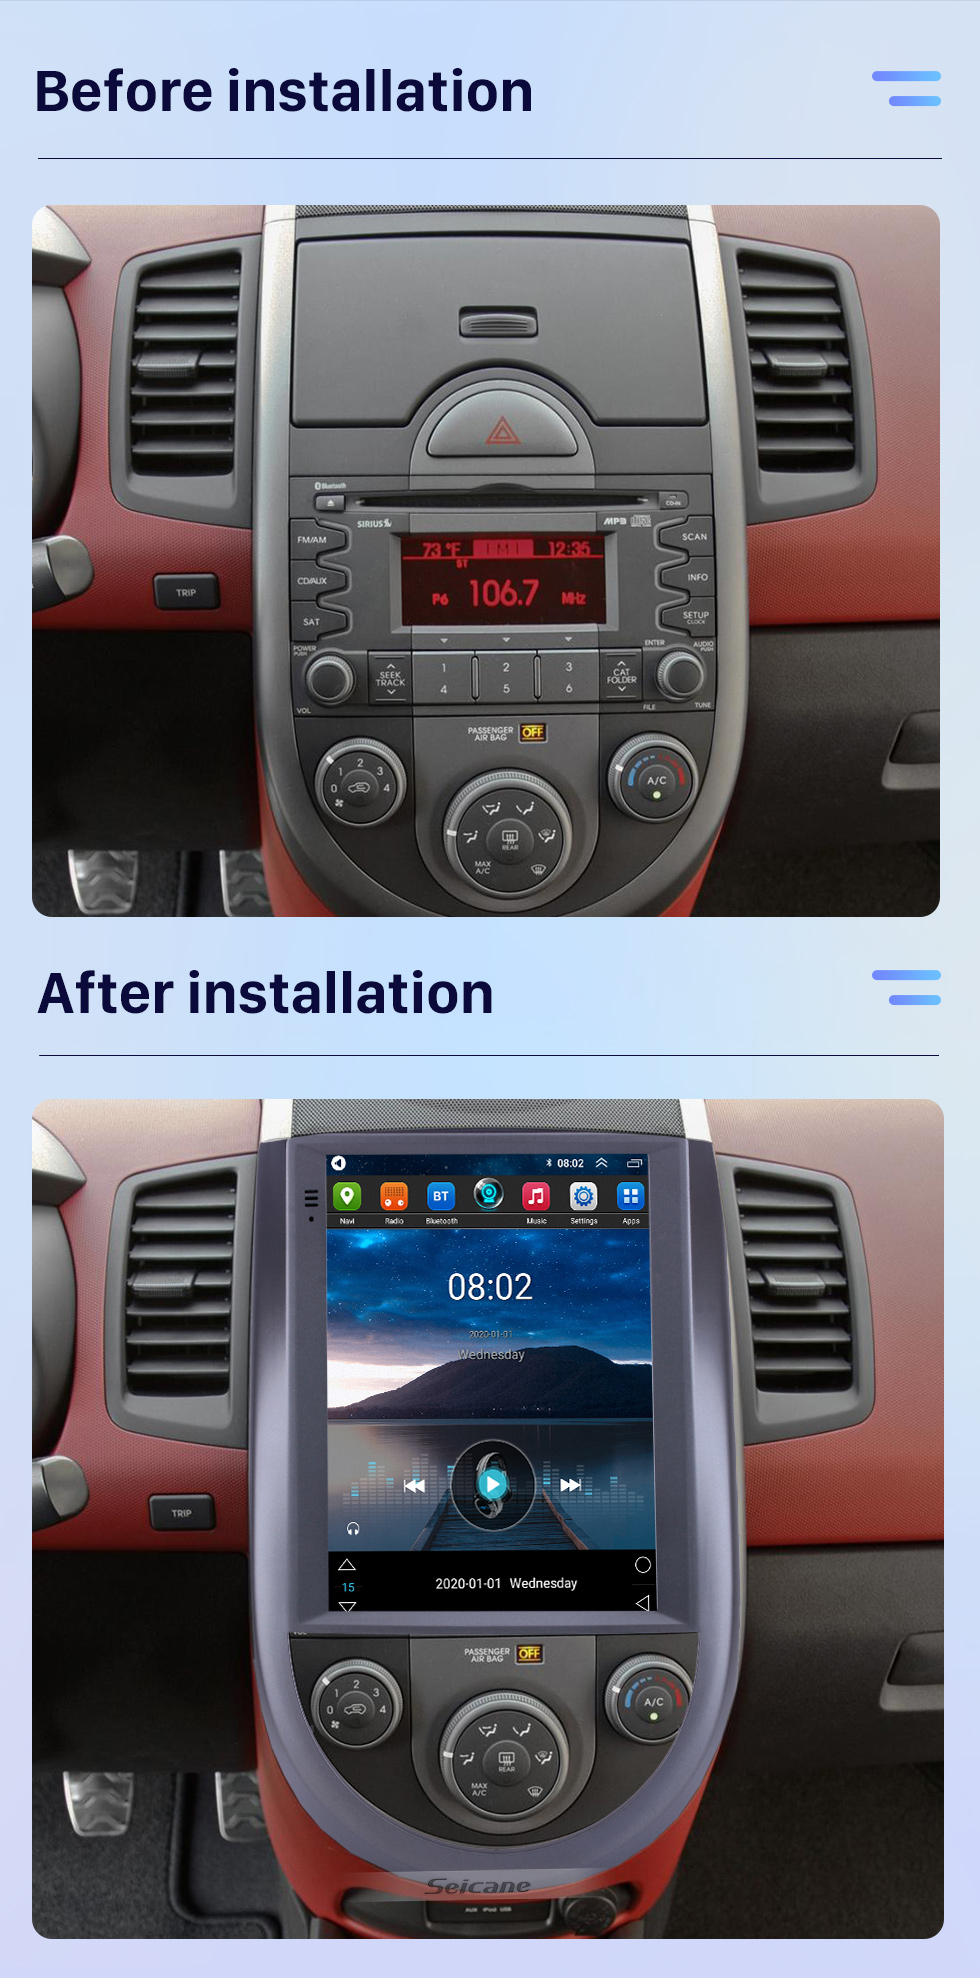 Seicane 2015 Kia Soul 9.7 inch Touchscreen Android 10.0 Multimedia Player Bluetooth GPS Navigation System Wifi FM USB support DVR Steering Wheel Control DVD Player